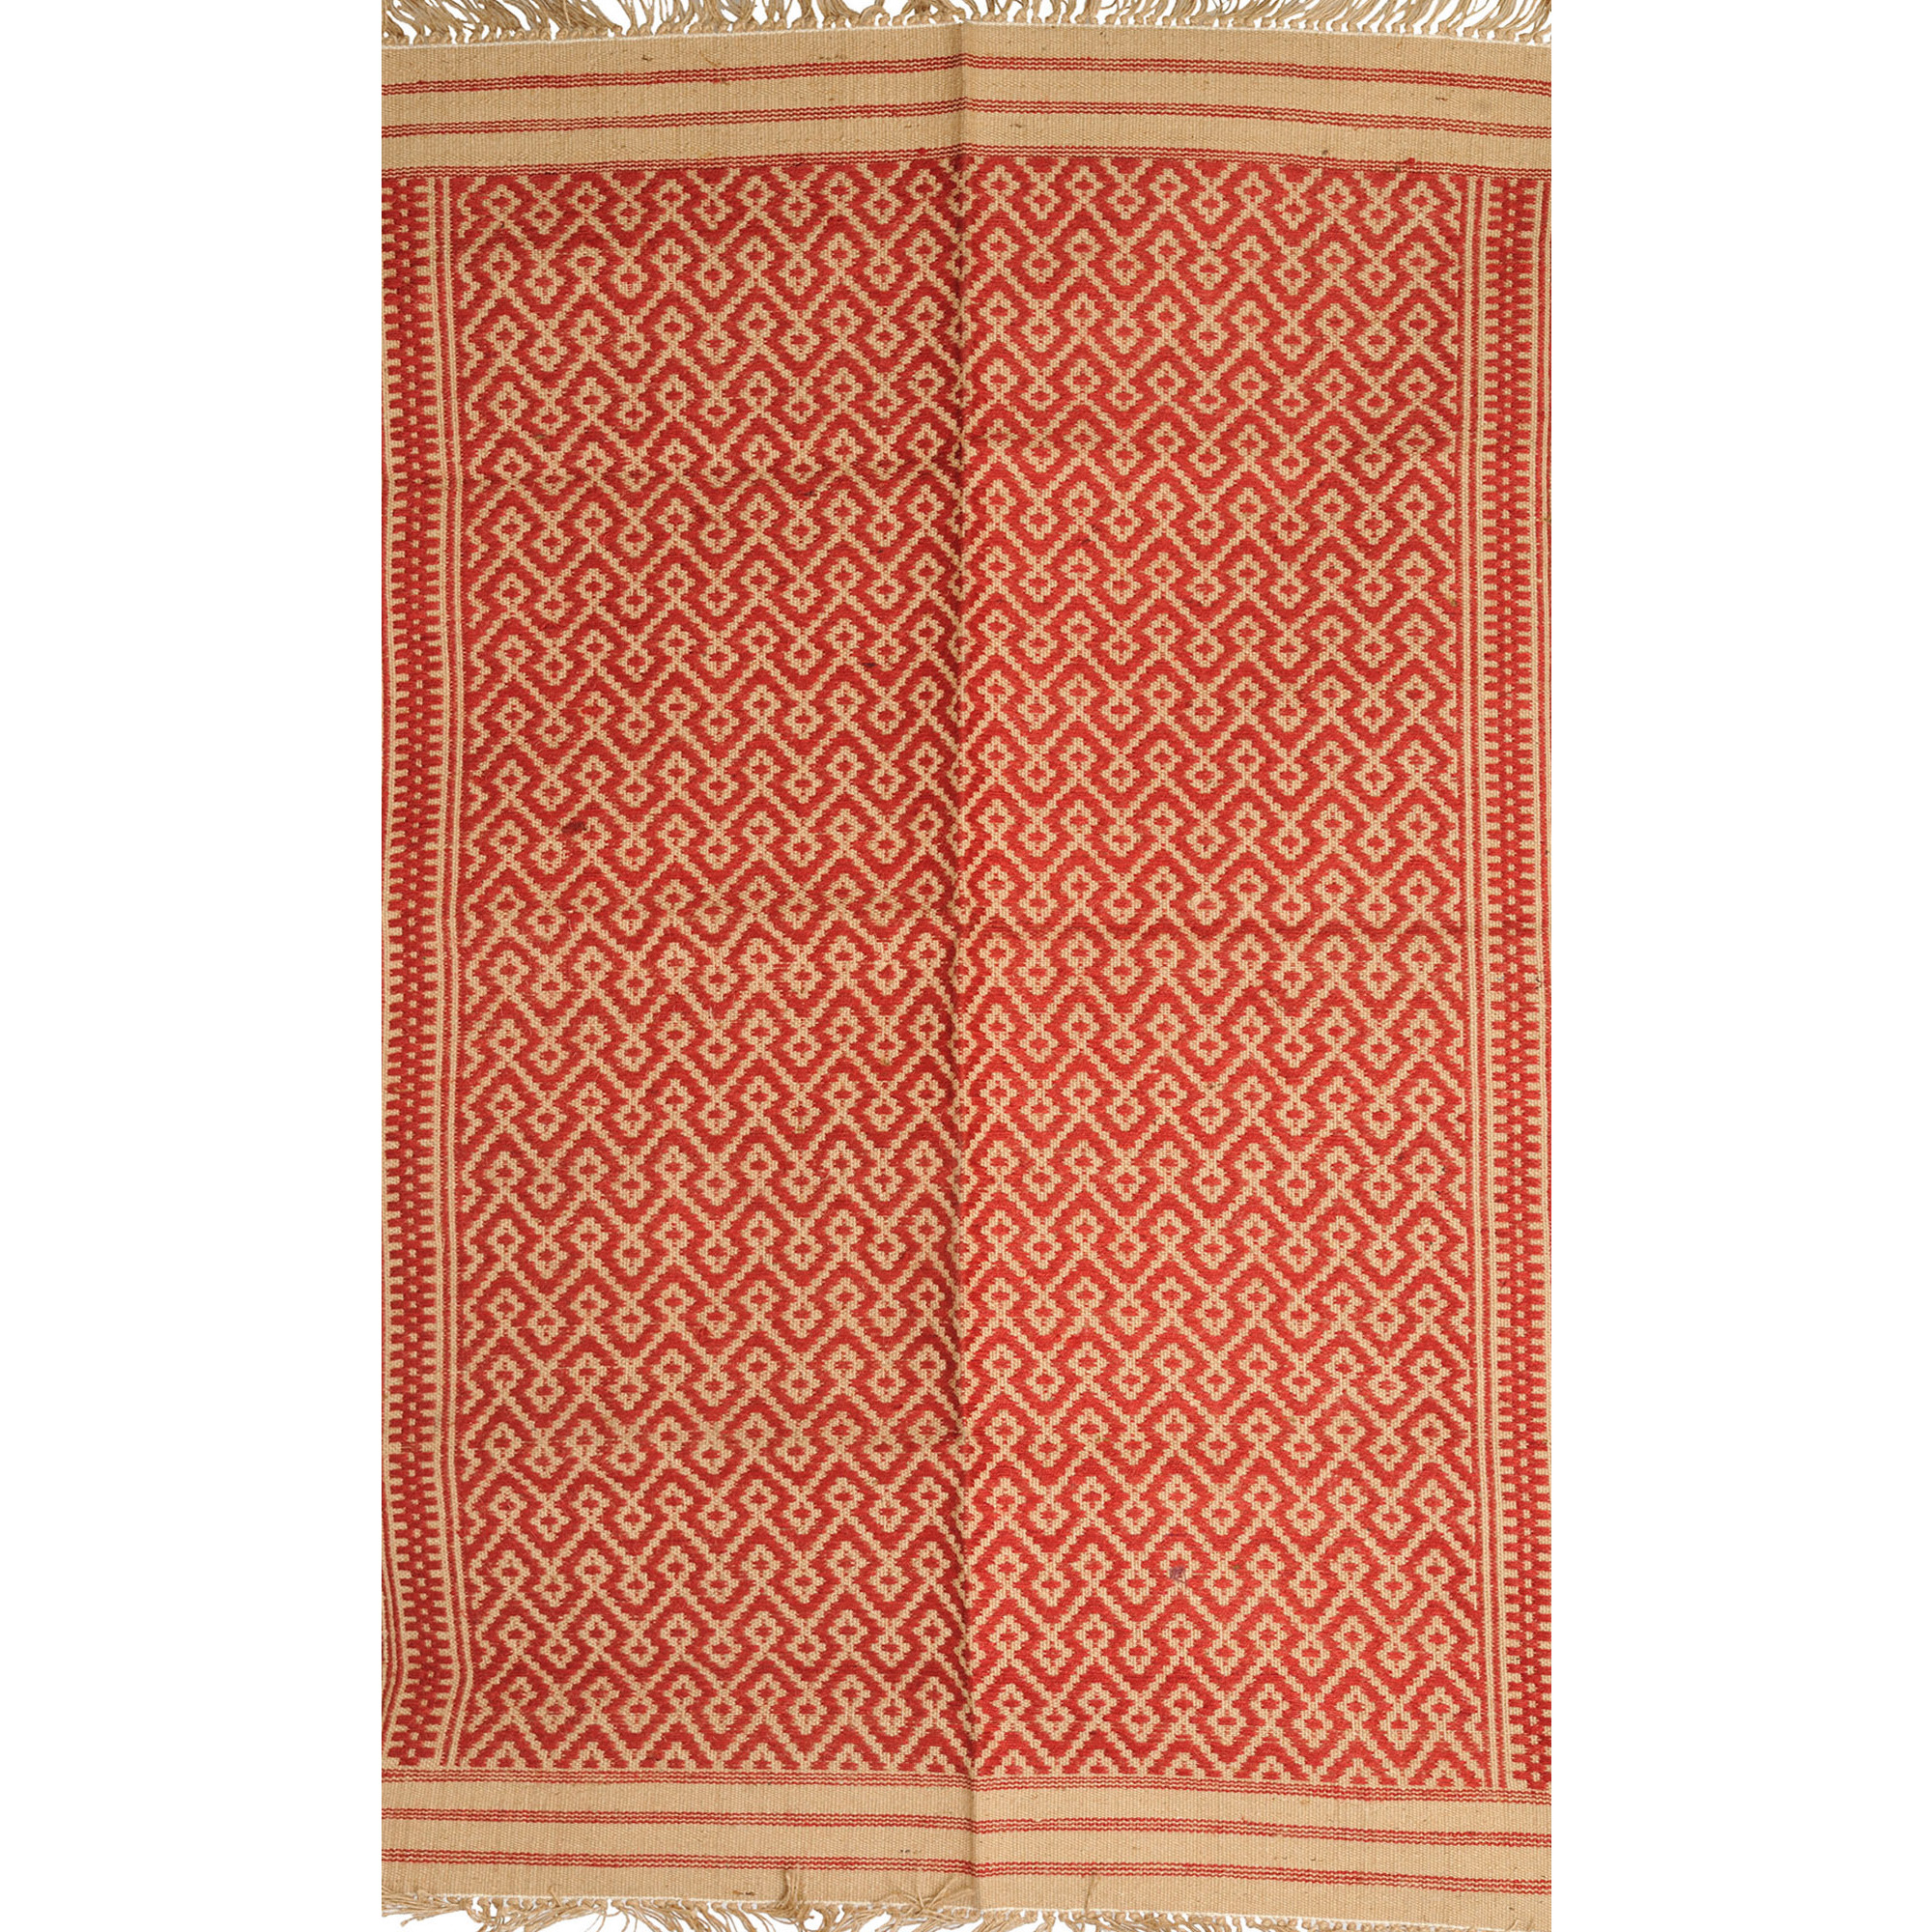 Red and Beige Dhurrie from Karnataka with Thread-Weave